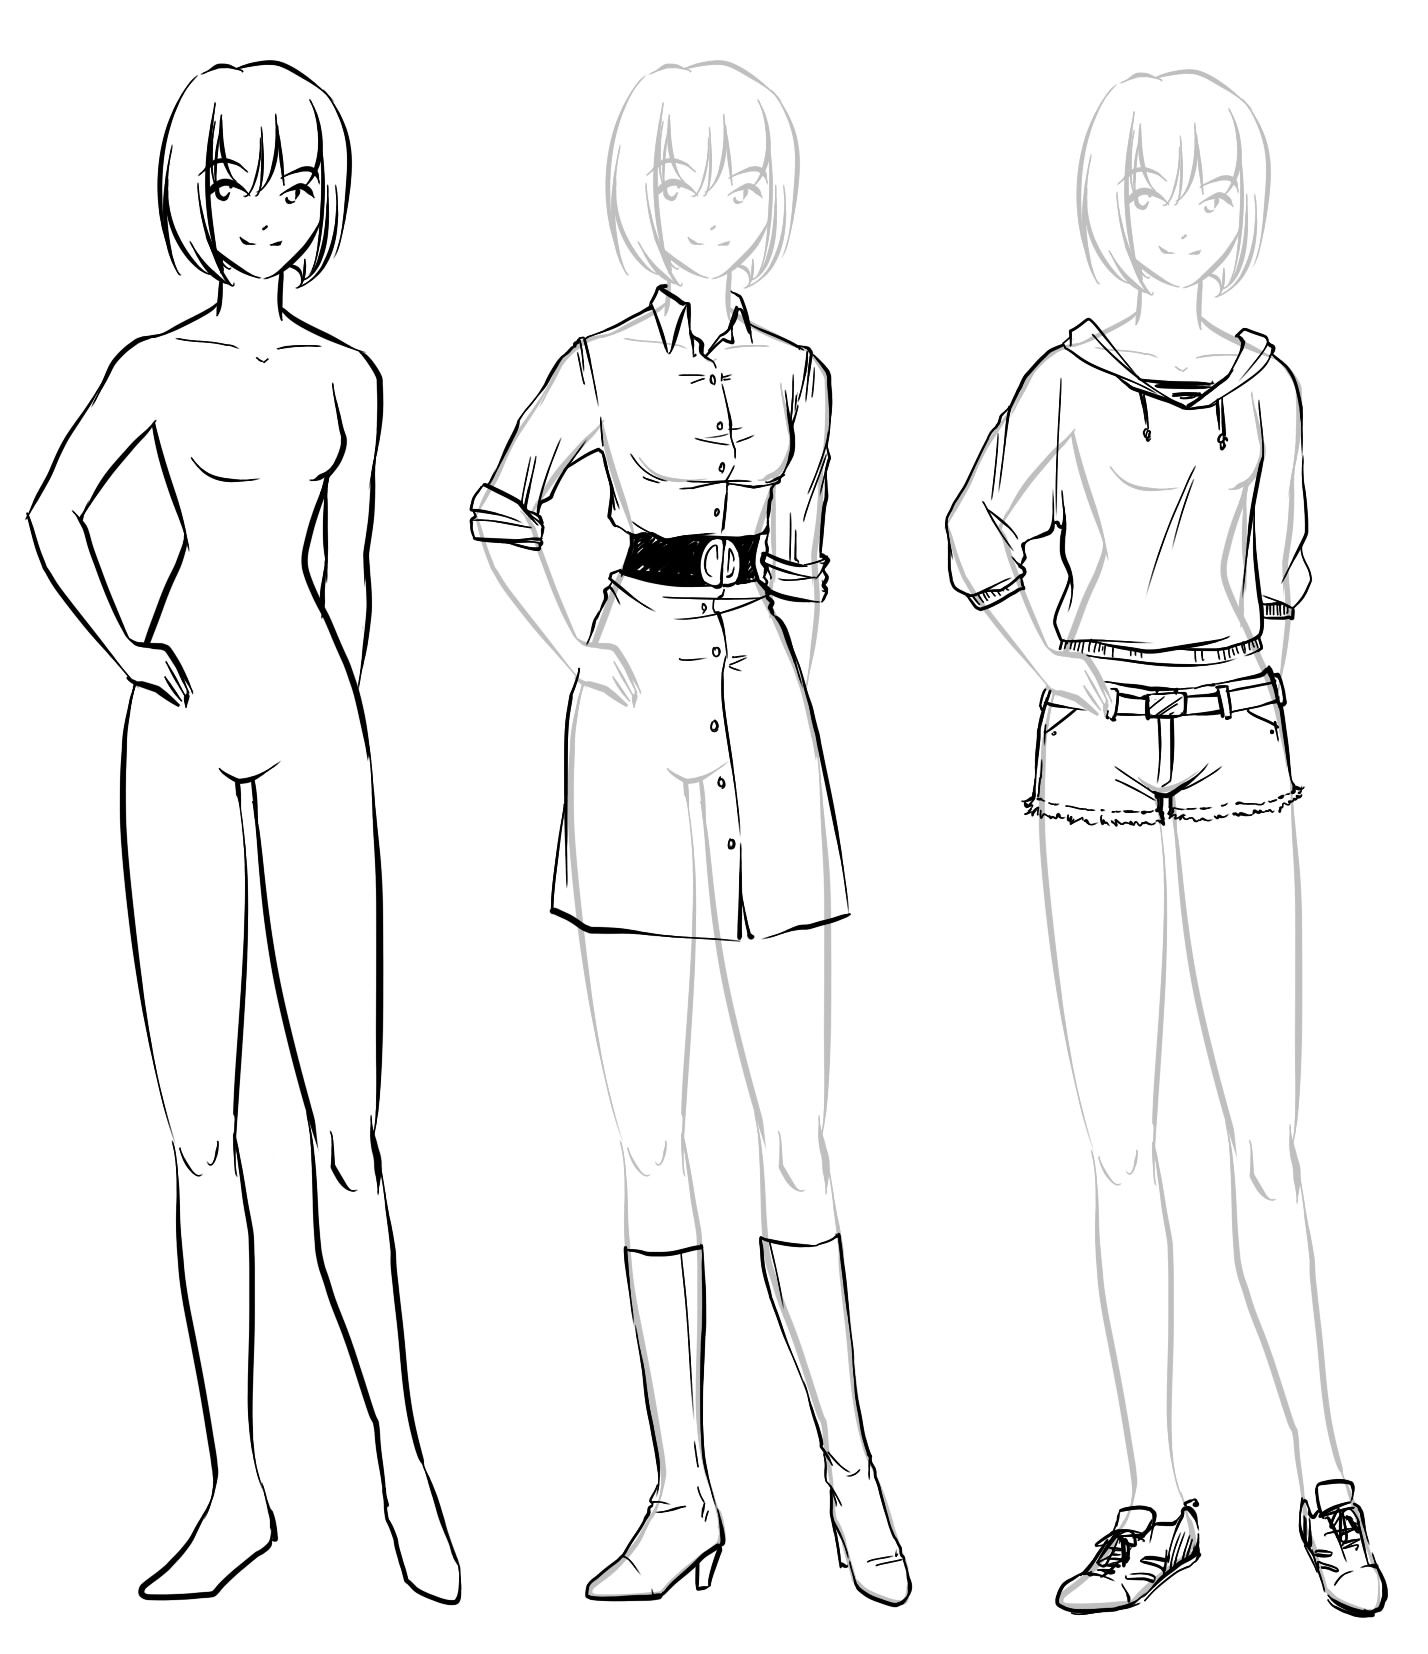 Anime girl full body drawing with clothing how to draw anime body with clothes how to draw anime poses and